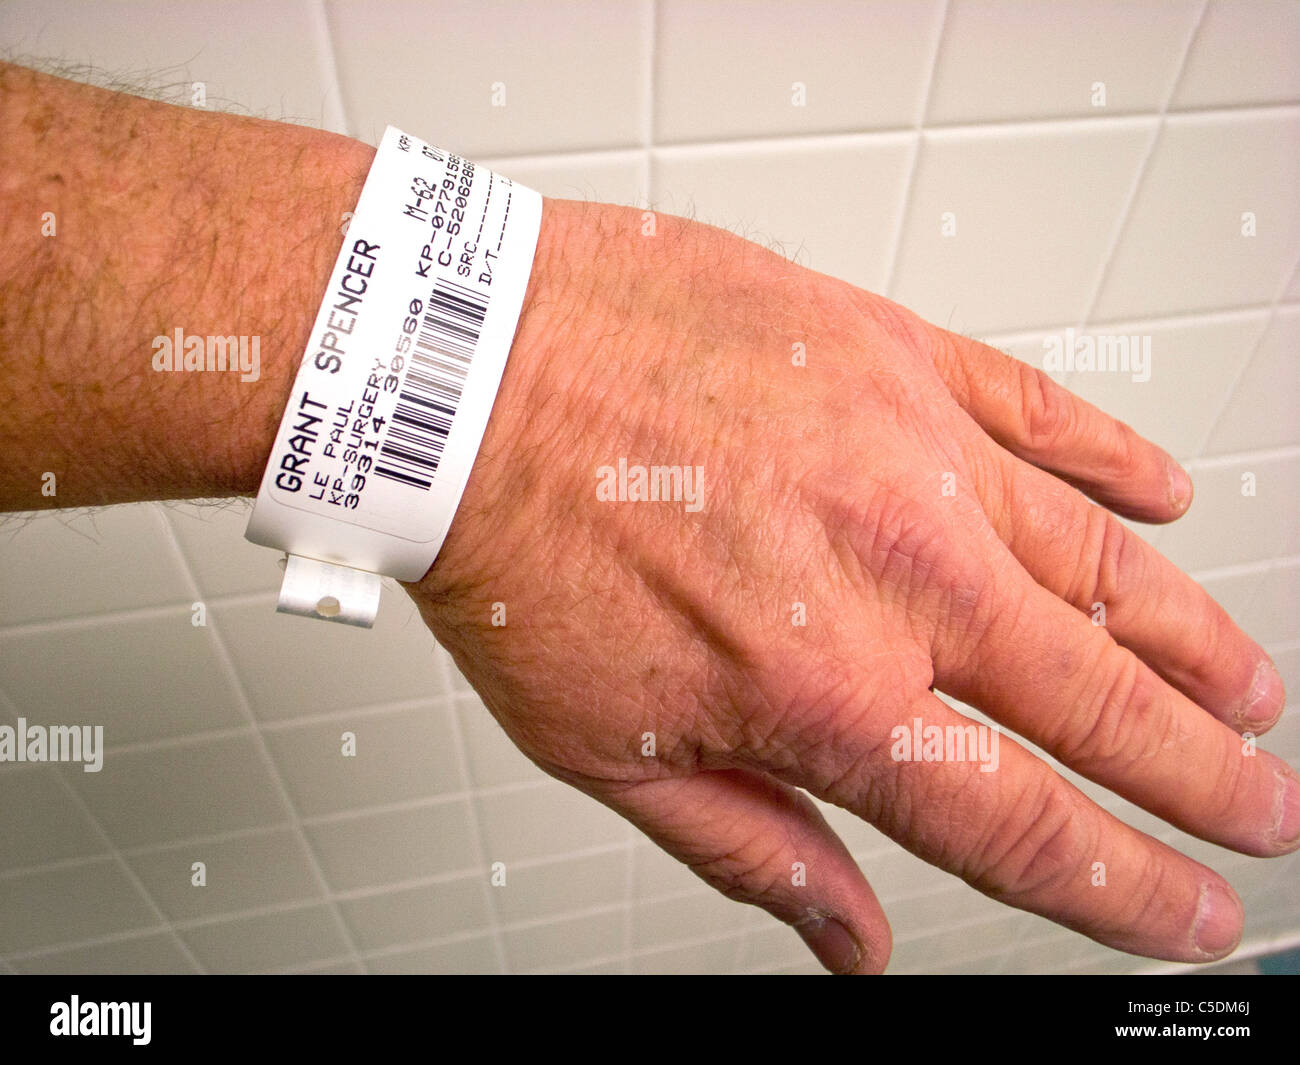 List Of Synonyms And Antonyms Of The Word Hospital Patient Wristbands